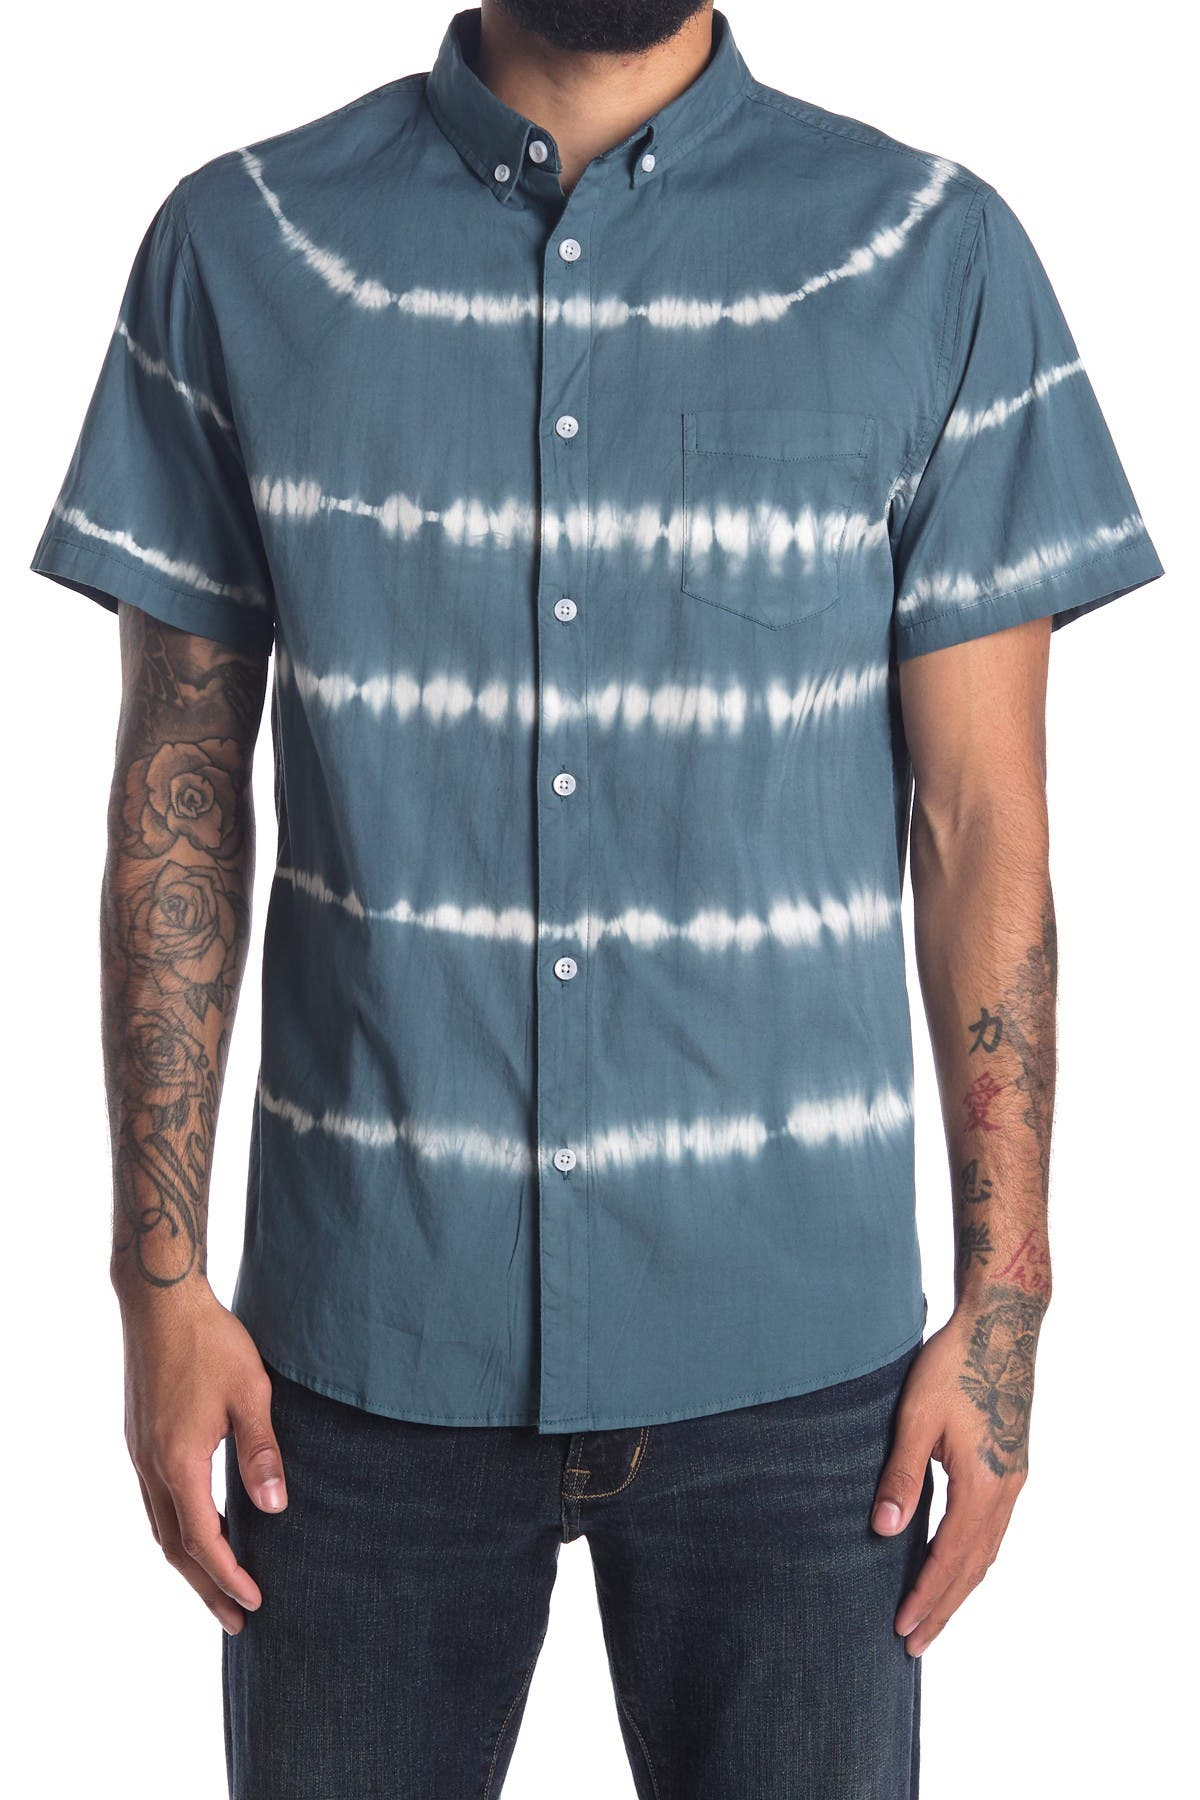 Image of Sovereign Code Hawthorne Tie Dye Patch Pocket Slim Fit Shirt